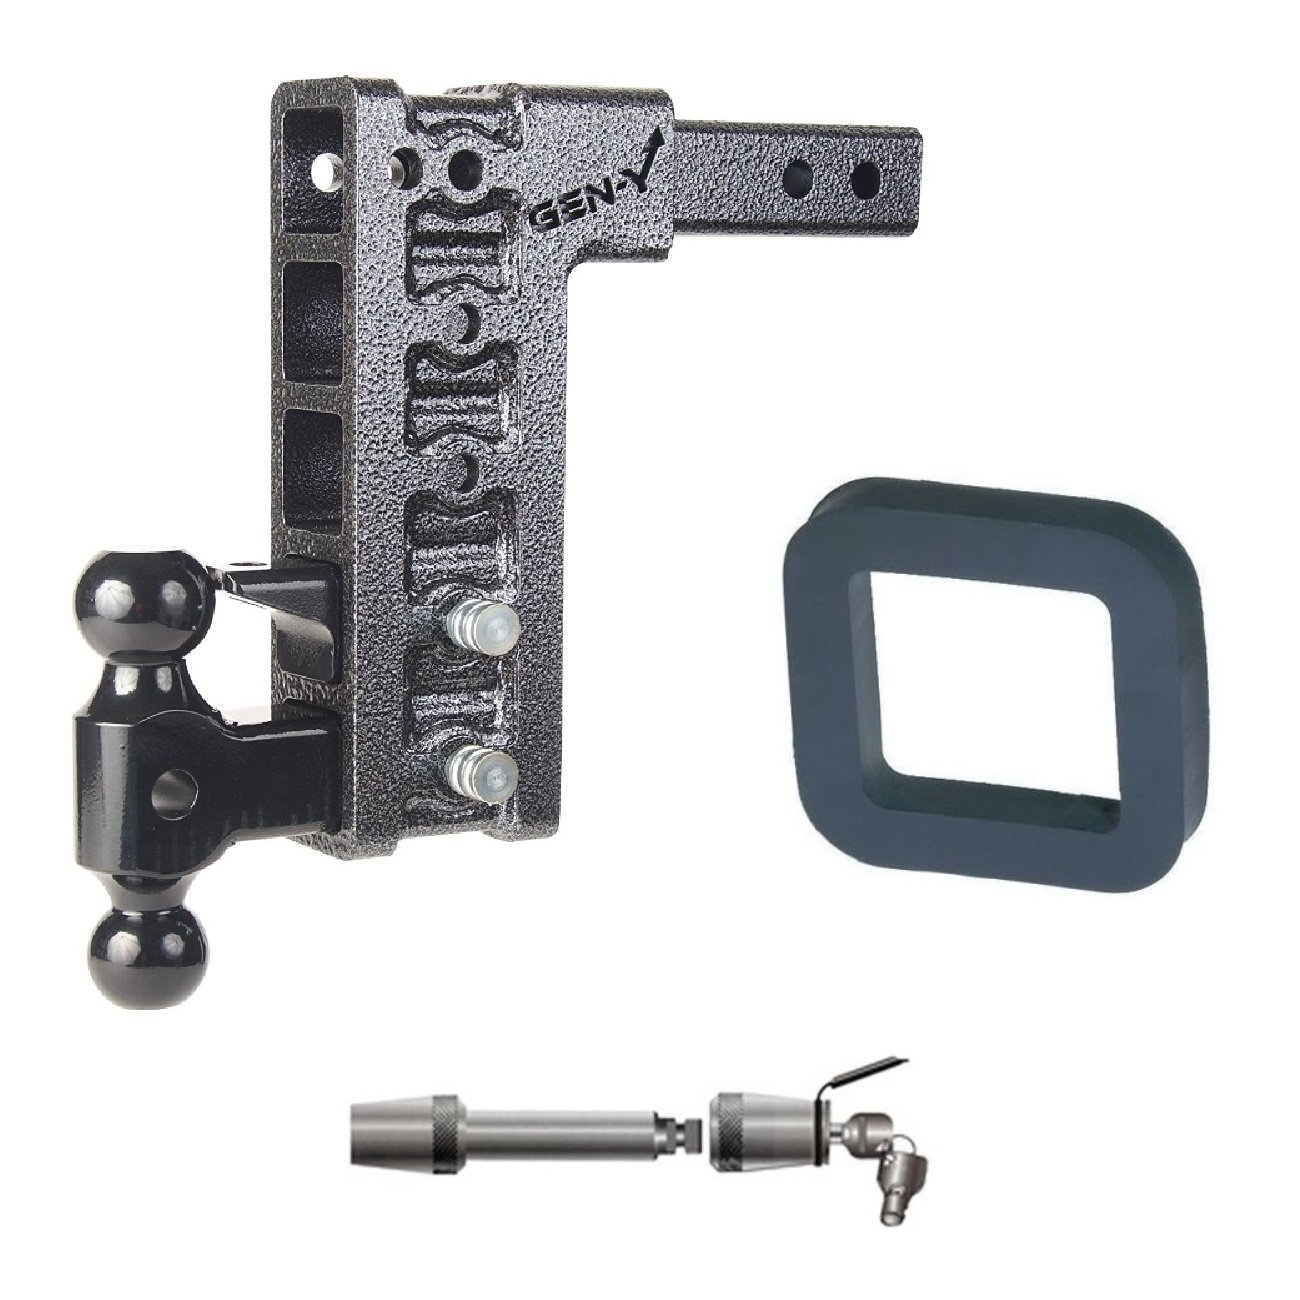 GEN-Y Hitch GH-325 Class IV 2'' Receiver 10'' Drop Hitch 10K Towing w/ 2'' Silencer Pad & Premium 5/8'' Extended Receiver Lock Bundle